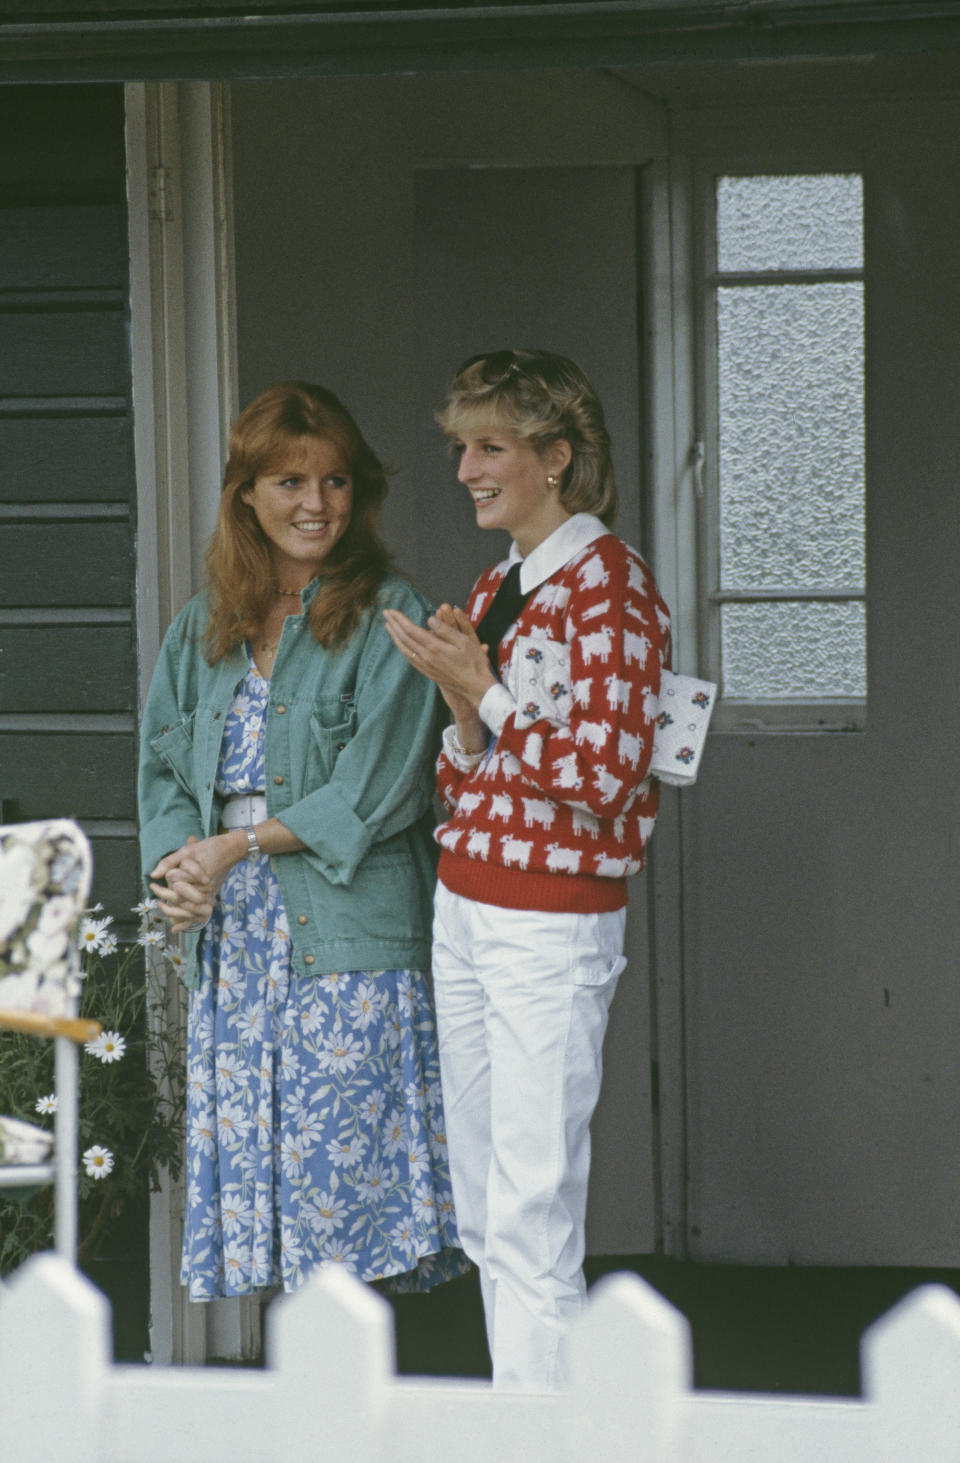 Diana, Princess of Wales  (1961 - 1997) and her friend Sarah Ferguson attend a polo match at Smith's Lawn, Guards Polo Club, Windsor, June 1983. Diana is wearing a Muir and Osborne 'black sheep' sweater. (Photo by Princess Diana Archive/Getty Images)